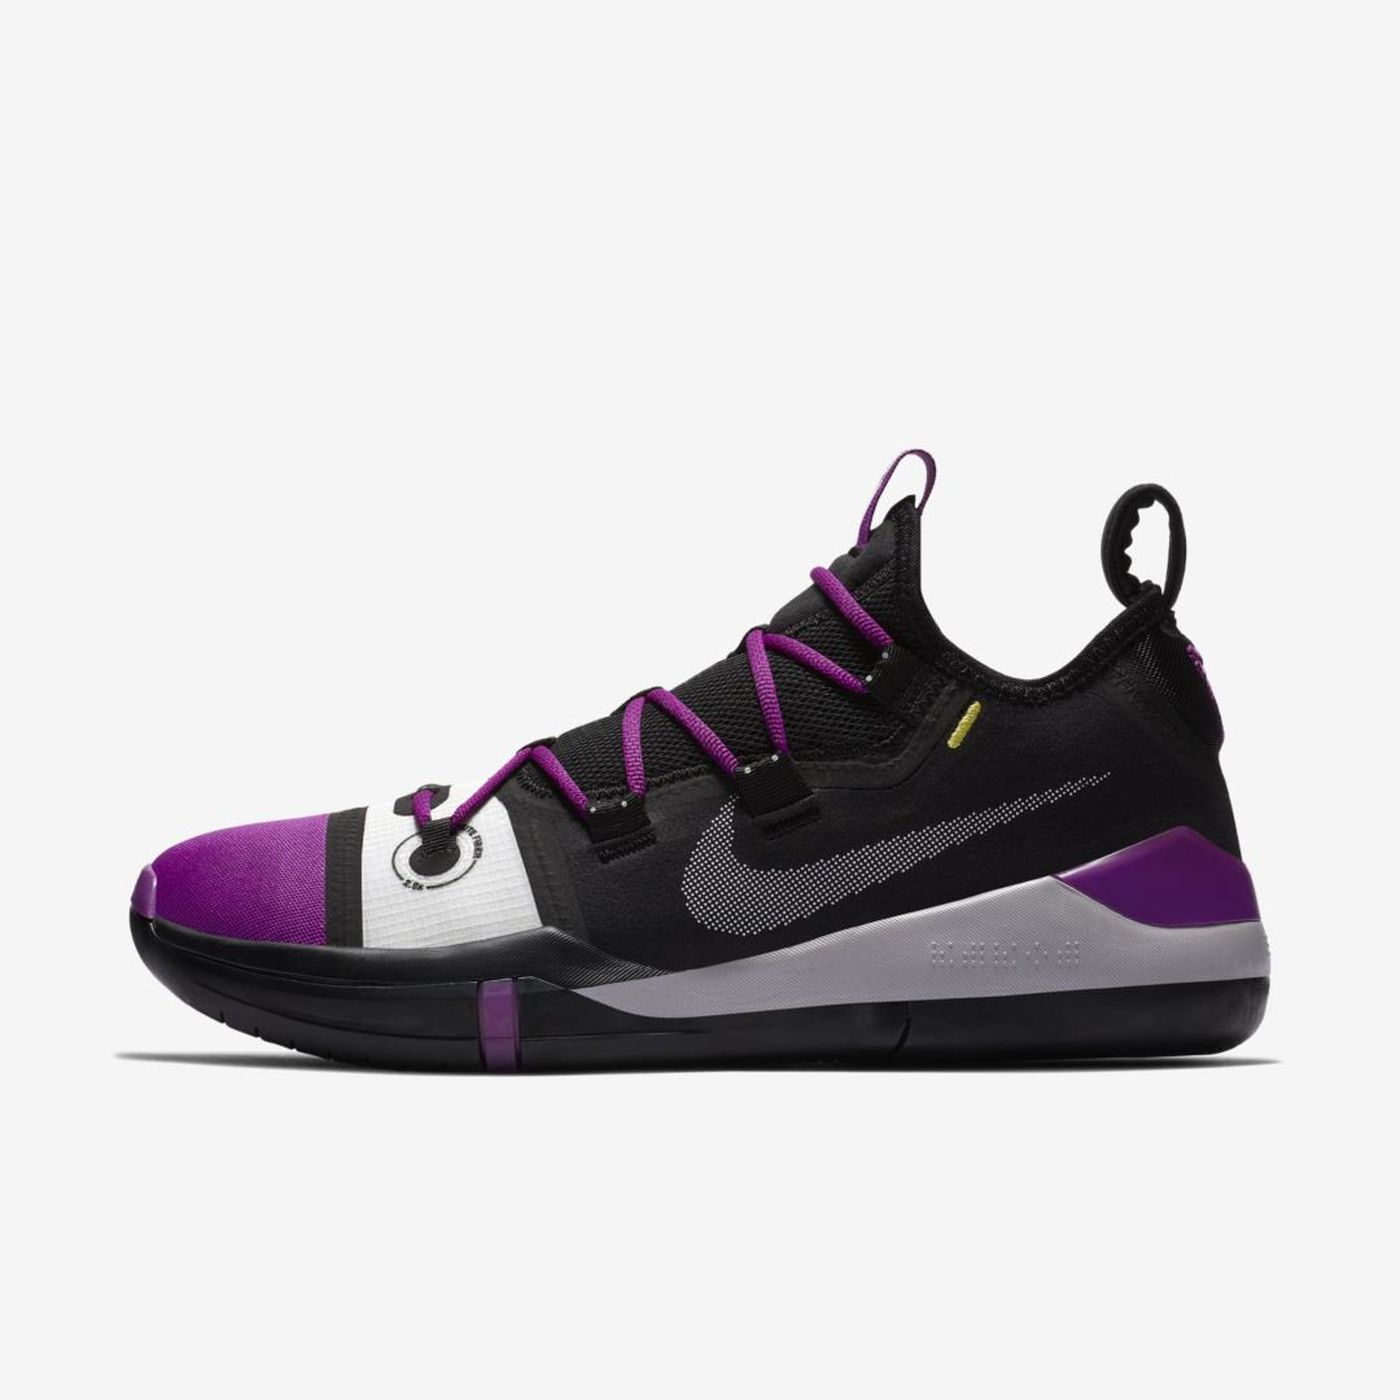 brand new f90e4 8e8e1 ... australia a purple colorway of the new kobe a.d.s leaked and it looks a  little better